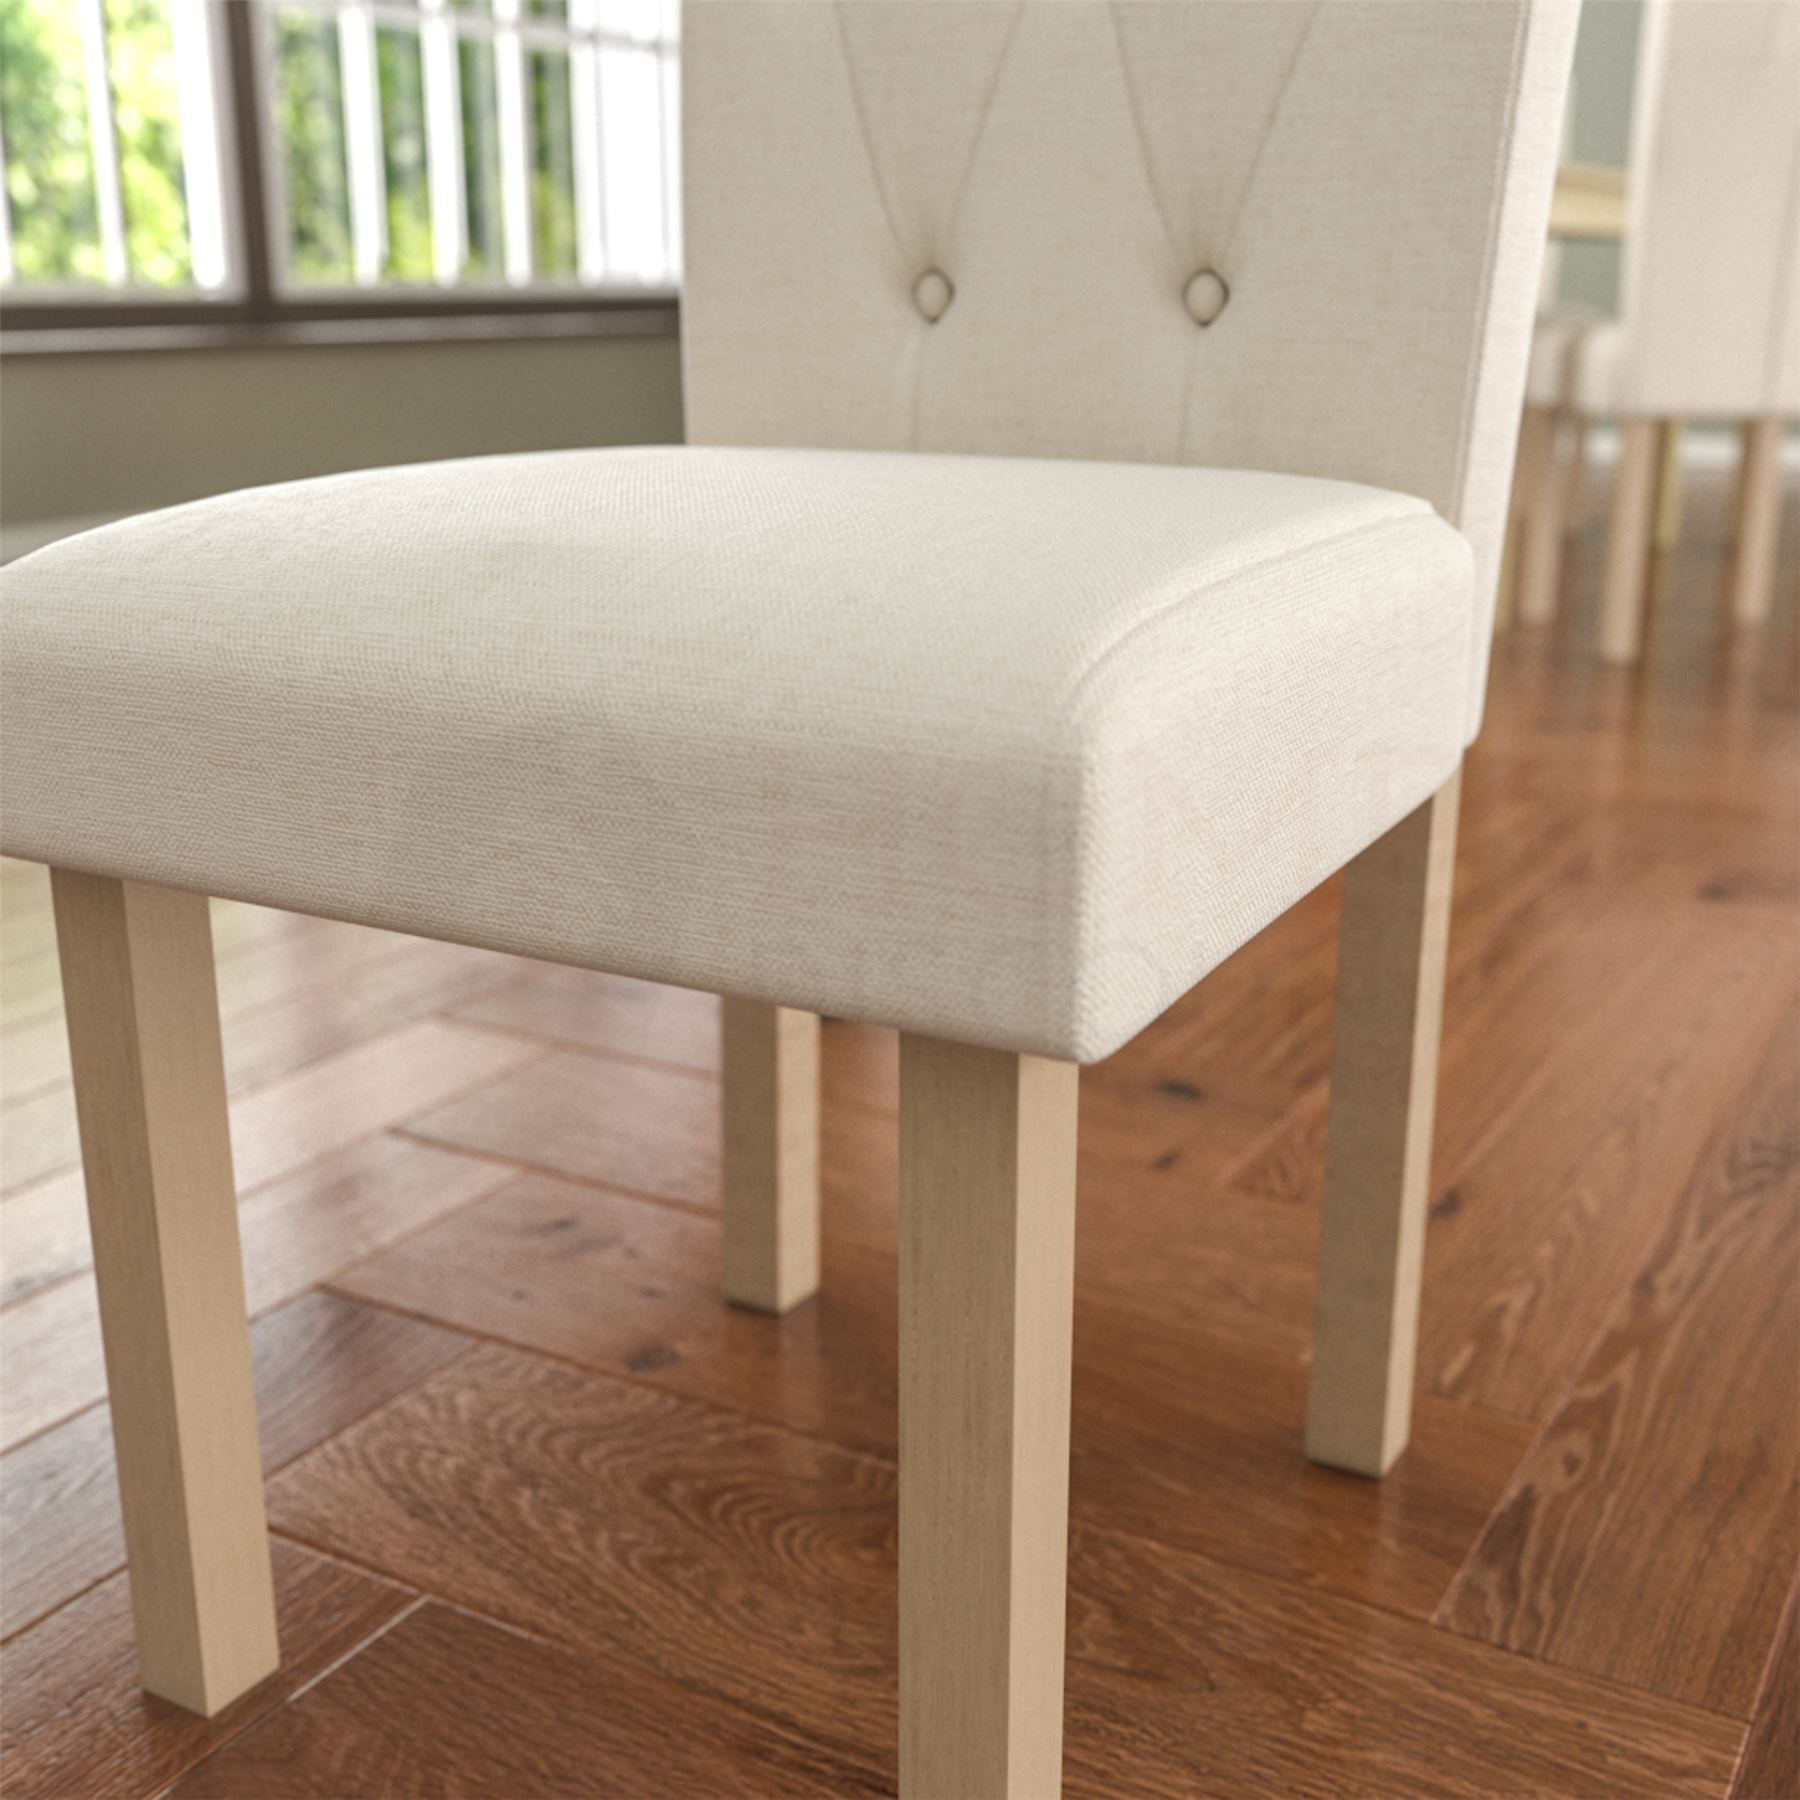 Set Of 4 Country Cream Dining Chairs: Dining Table & 4 Chairs Fabric Seat Kitchen Dining Room